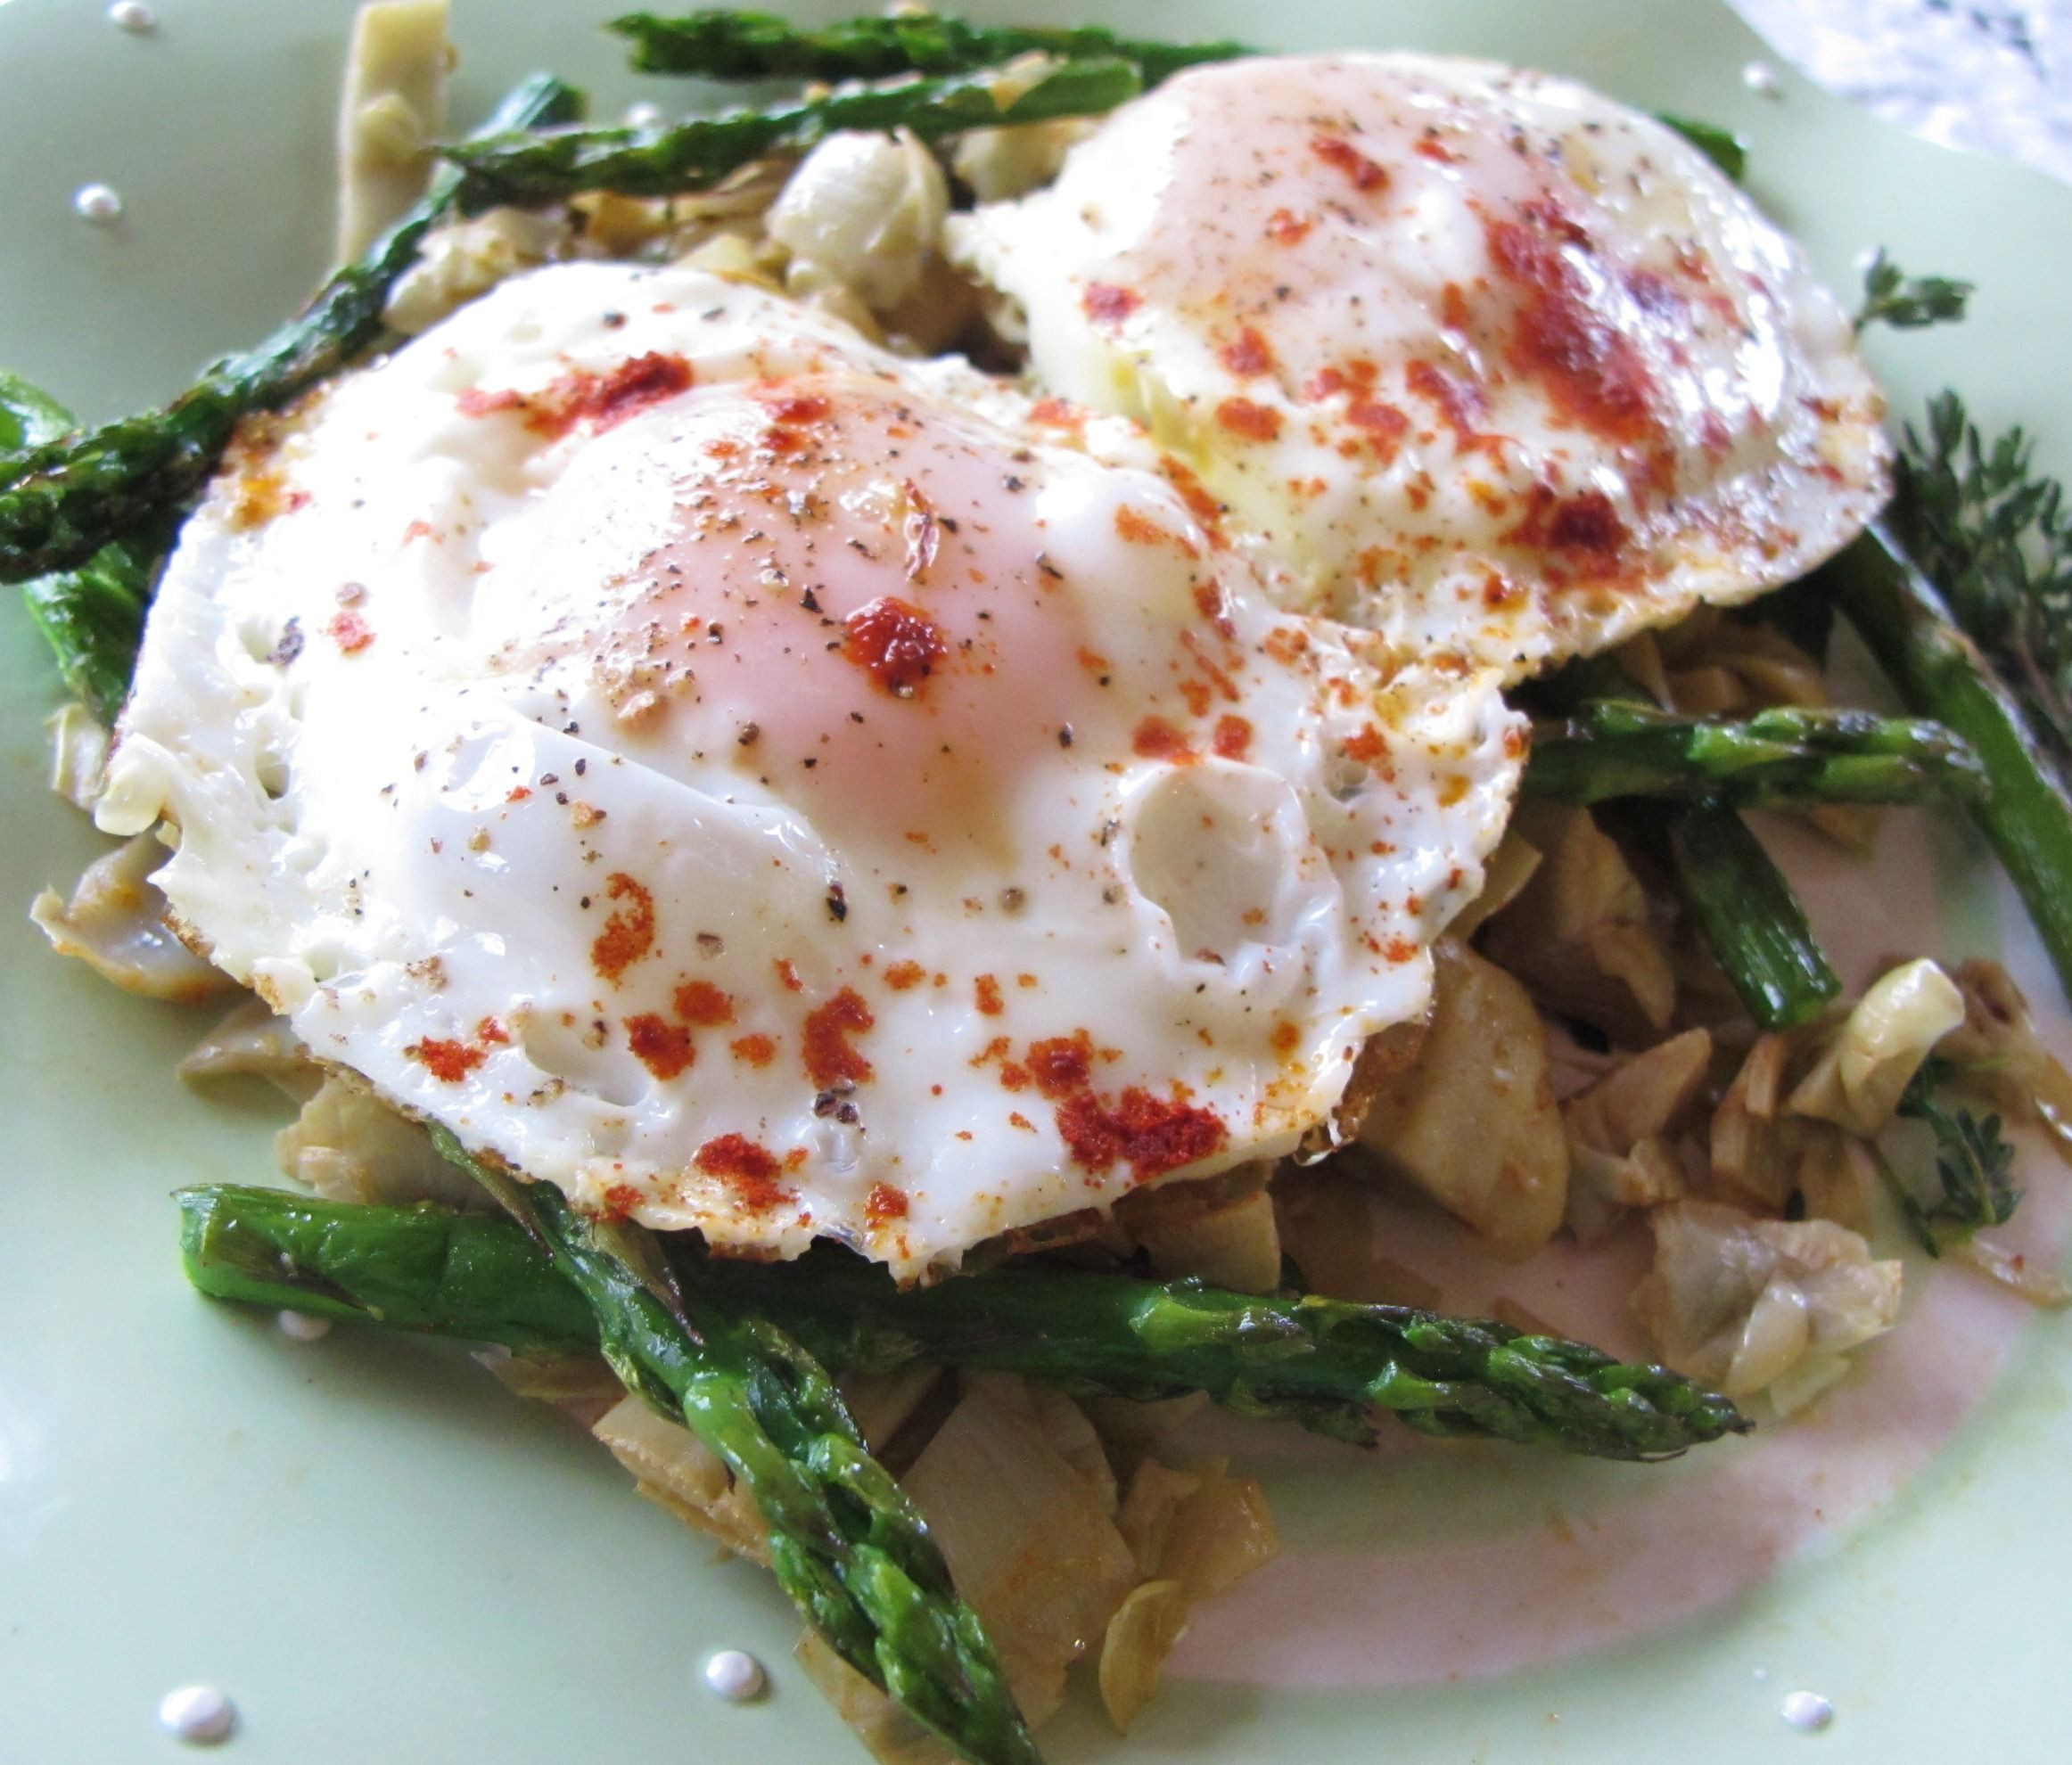 Low Carb Breakfast Asparagus & Eggs on Artichoke Bed